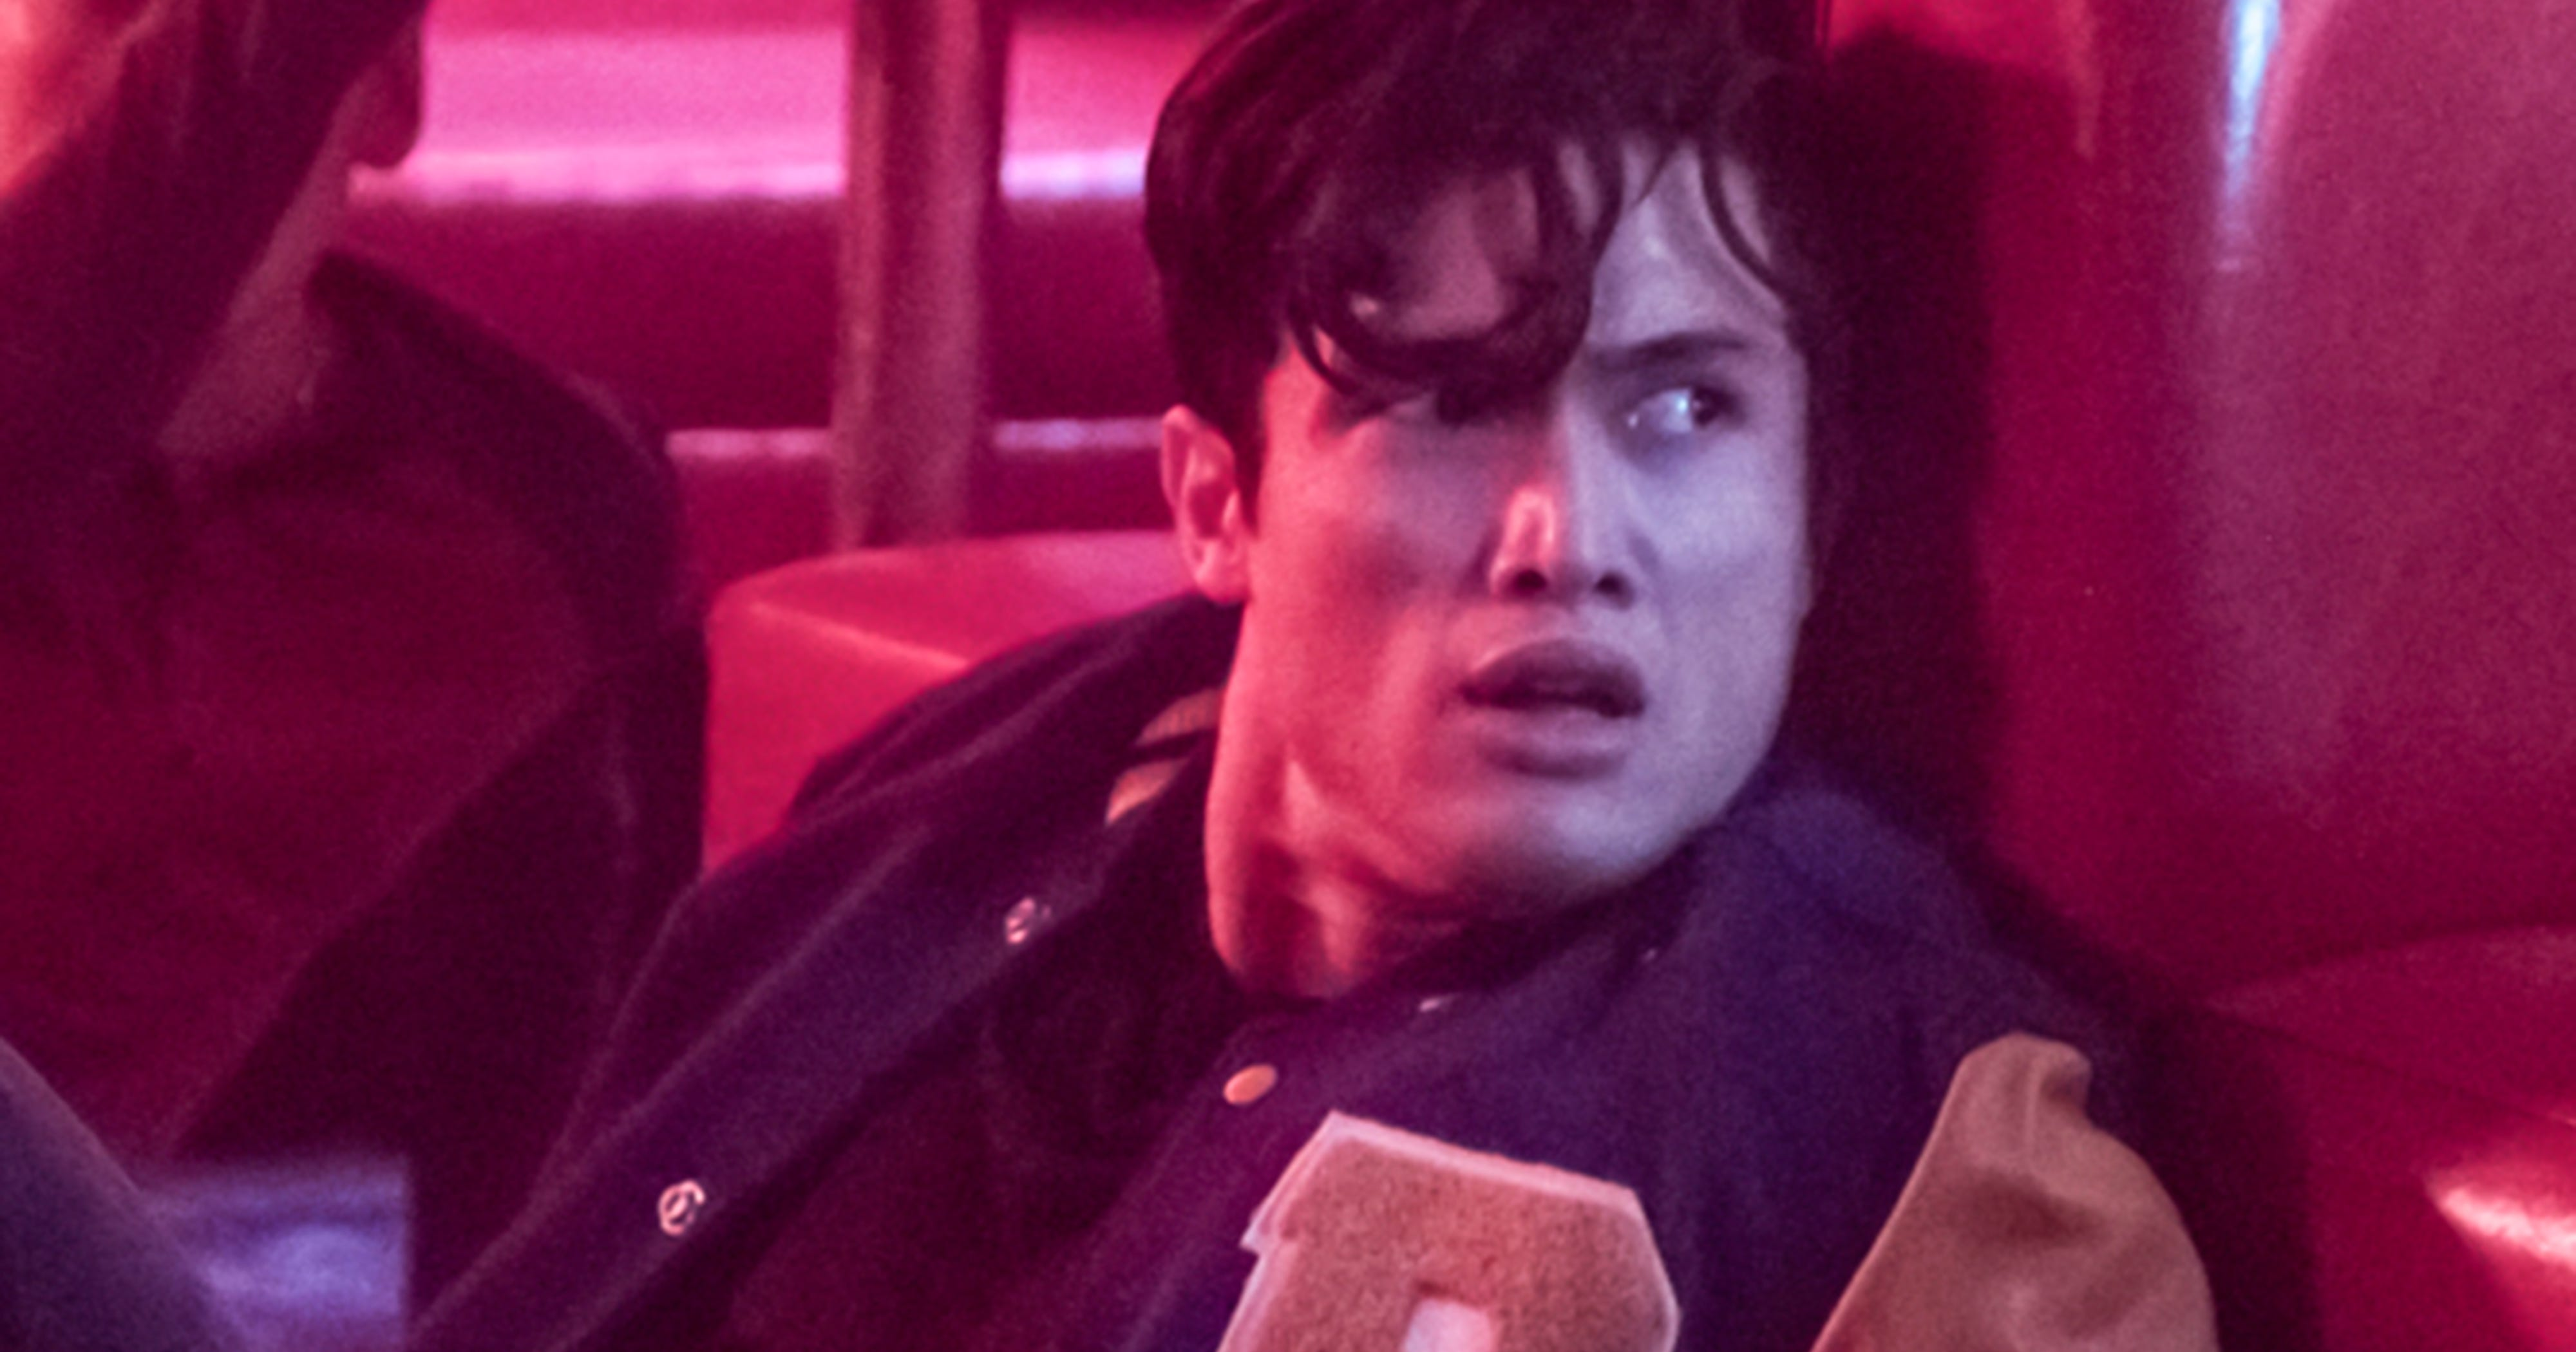 Riverdale Dark Circle Explained - Why Shooting Happened